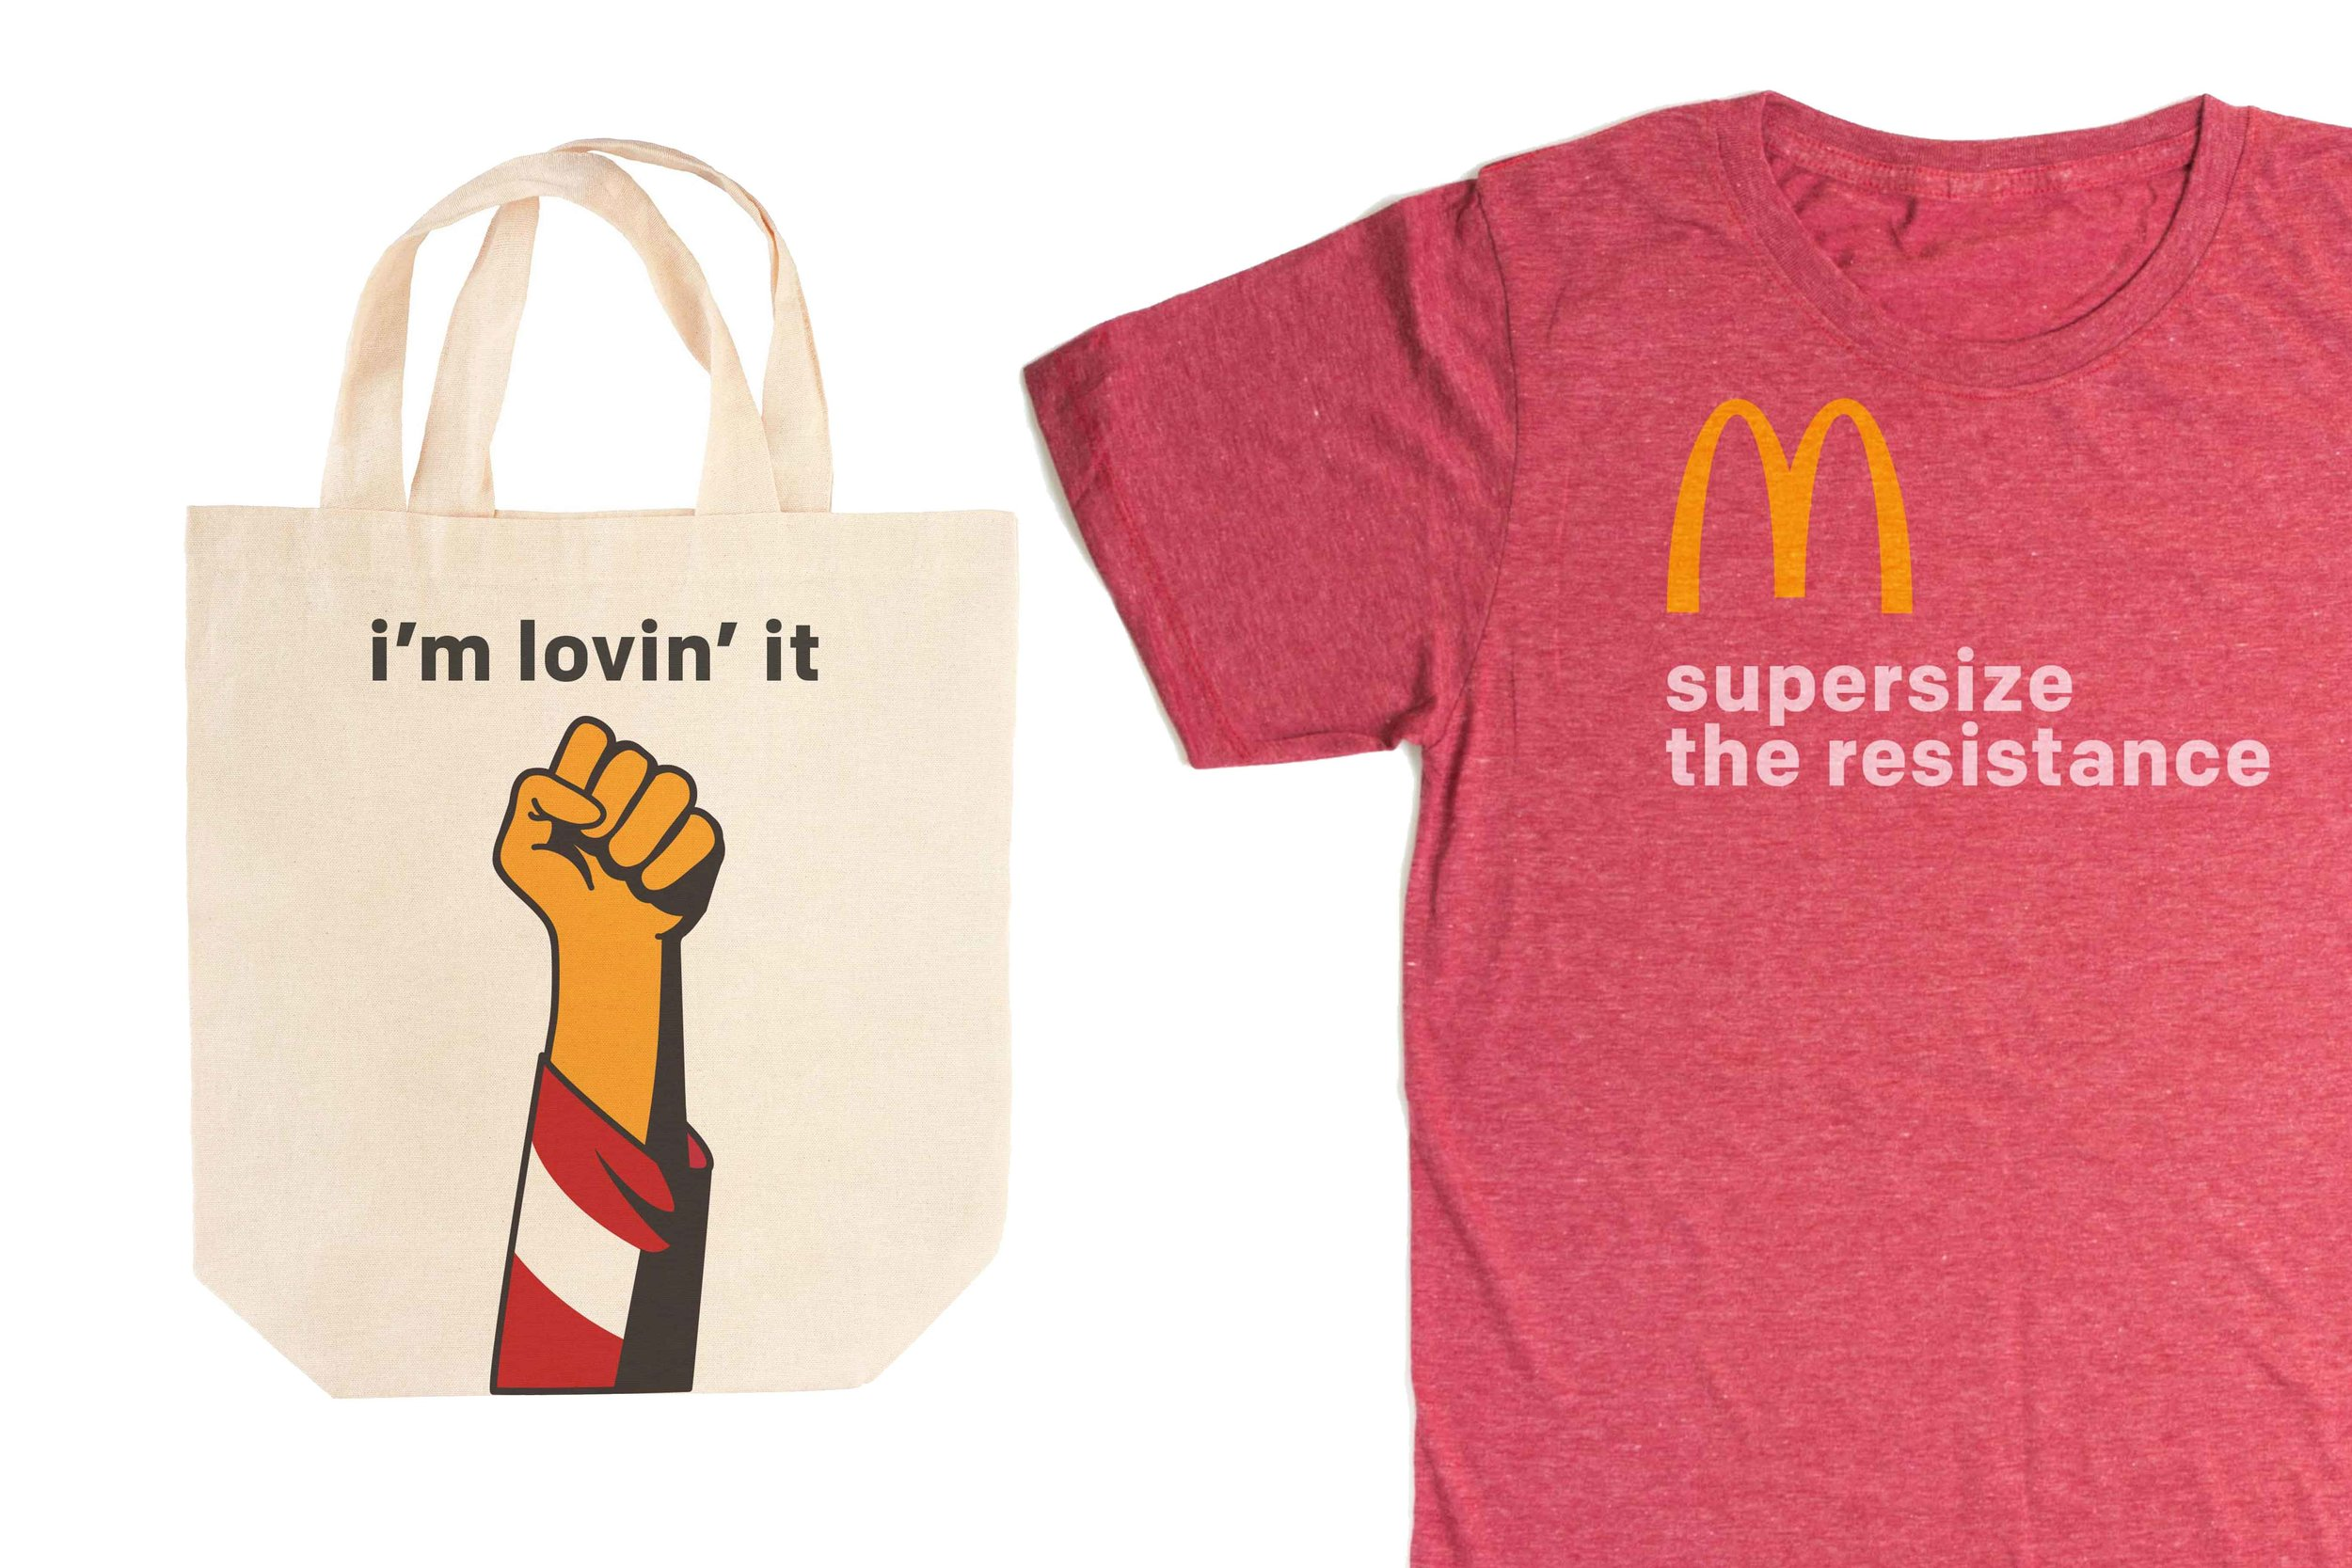 Tees, tote bags, and hats were all sold by Hunt, Gather to raise money for Meal on Wheels.